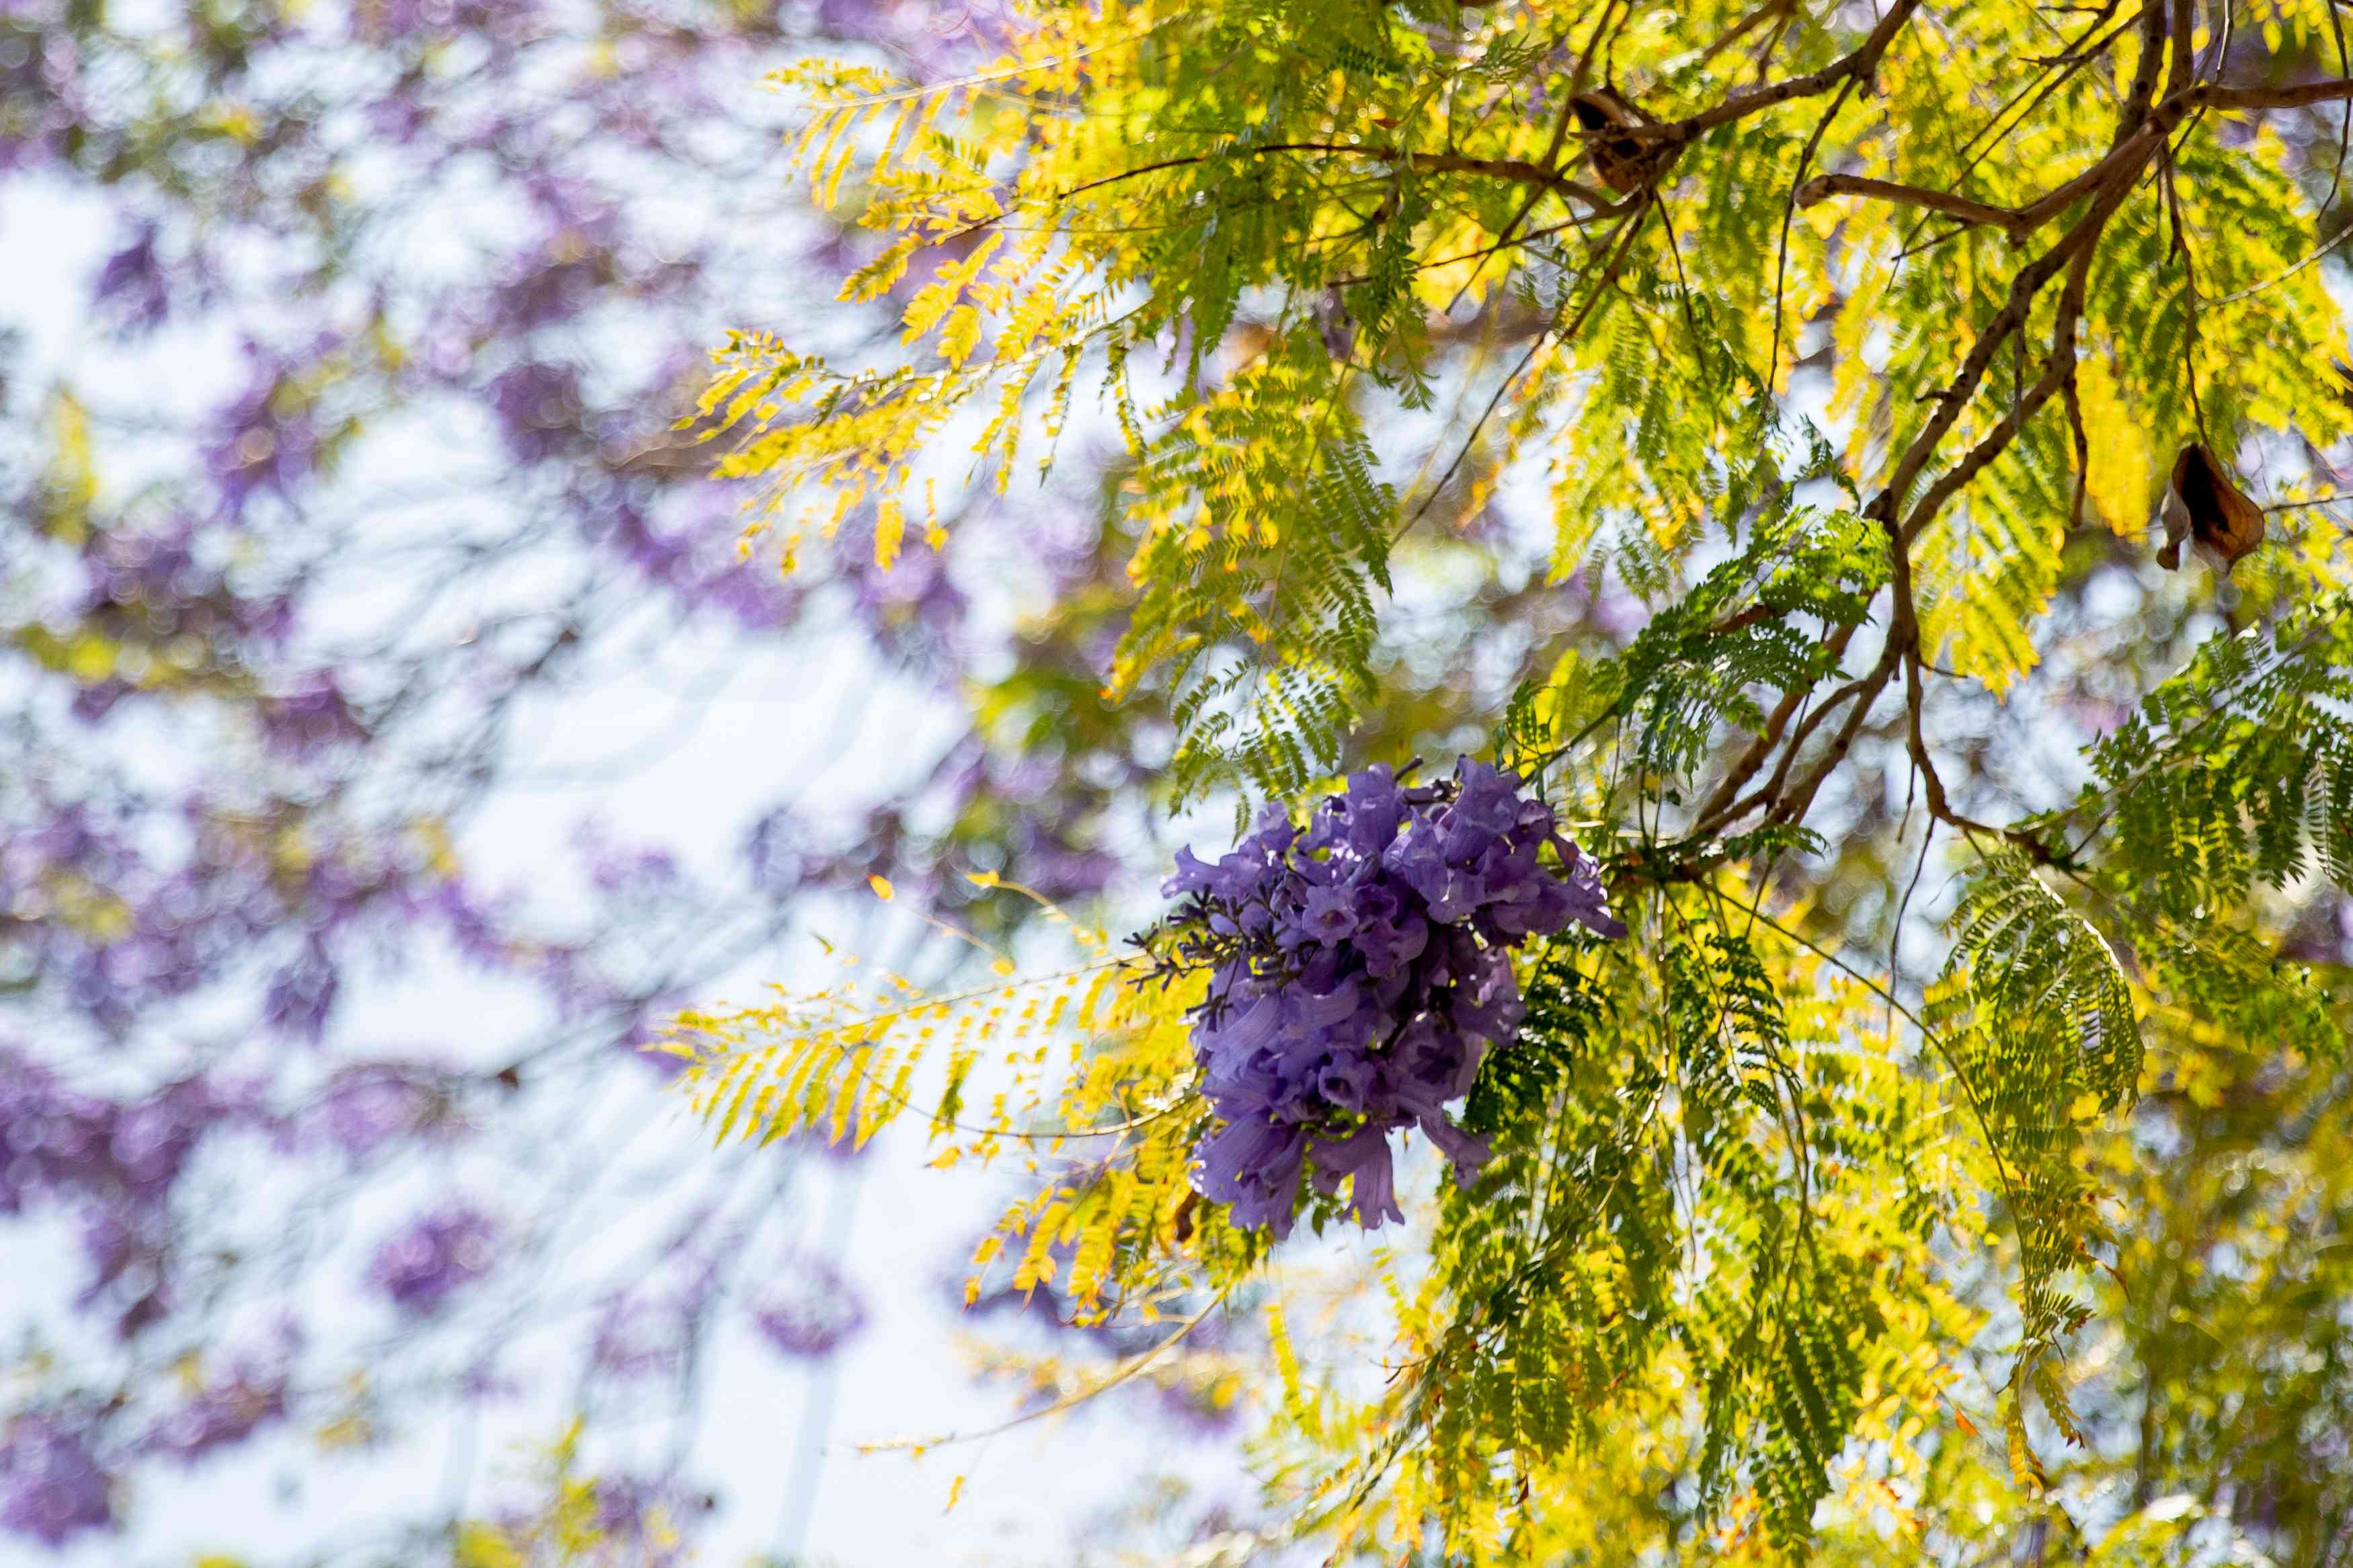 Jacaranda tree branch with yellow and green fern-like leaves and purple trumpet-like flowers